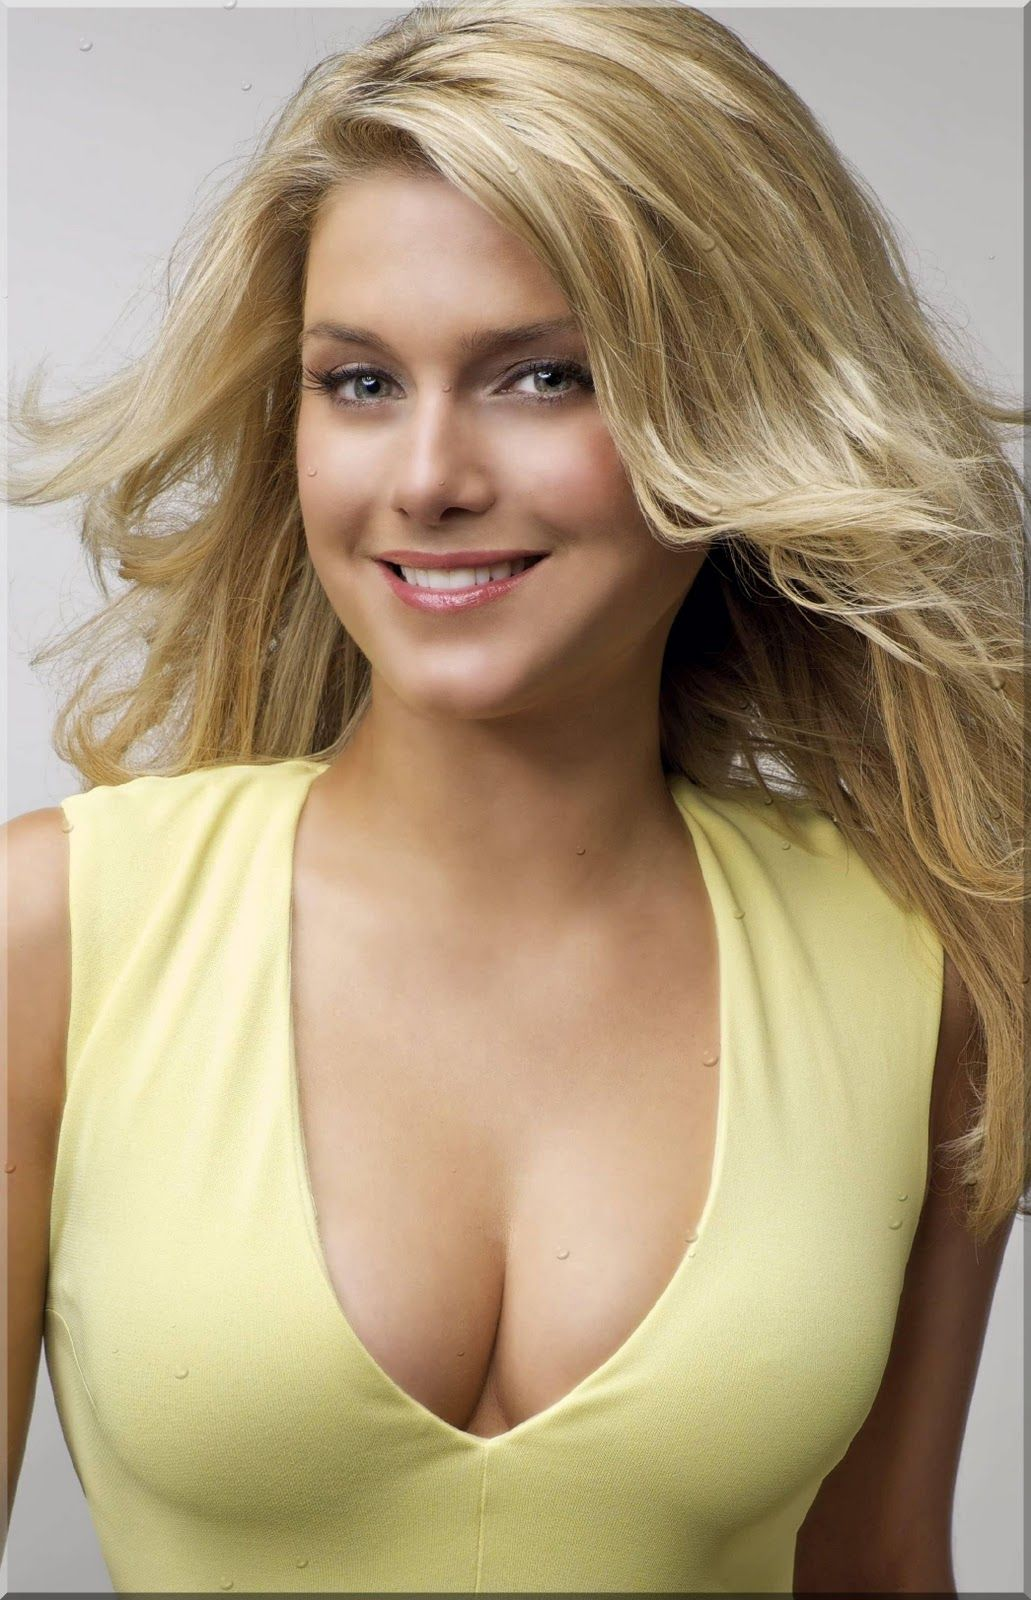 Jeanette Biedermann German Actress | Girls | Pinterest ...